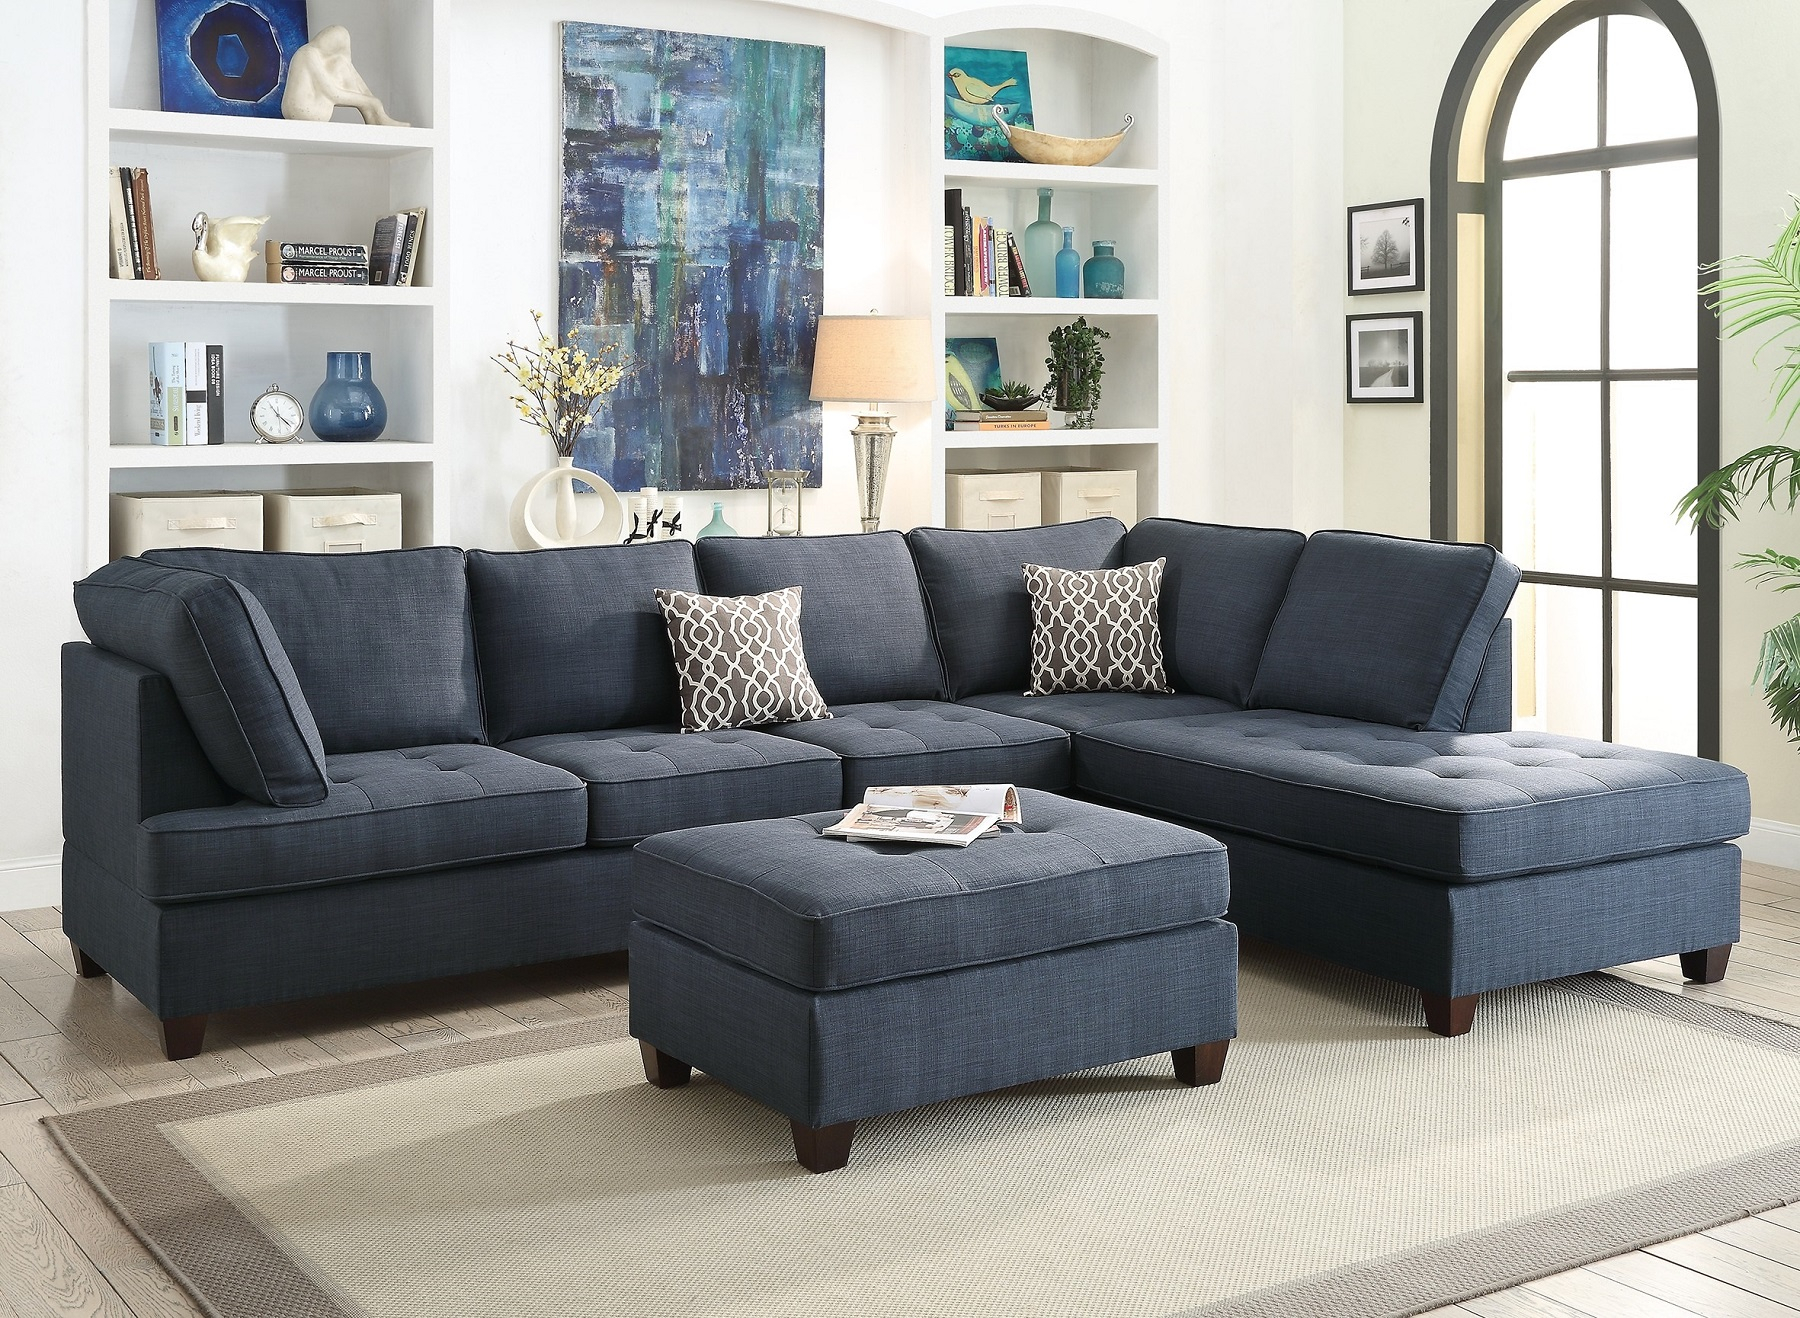 Blue Sectional Sofa Chaise Poundex #F6989 | Hot Sectionals For 4Pc Crowningshield Contemporary Chaise Sectional Sofas (View 5 of 15)